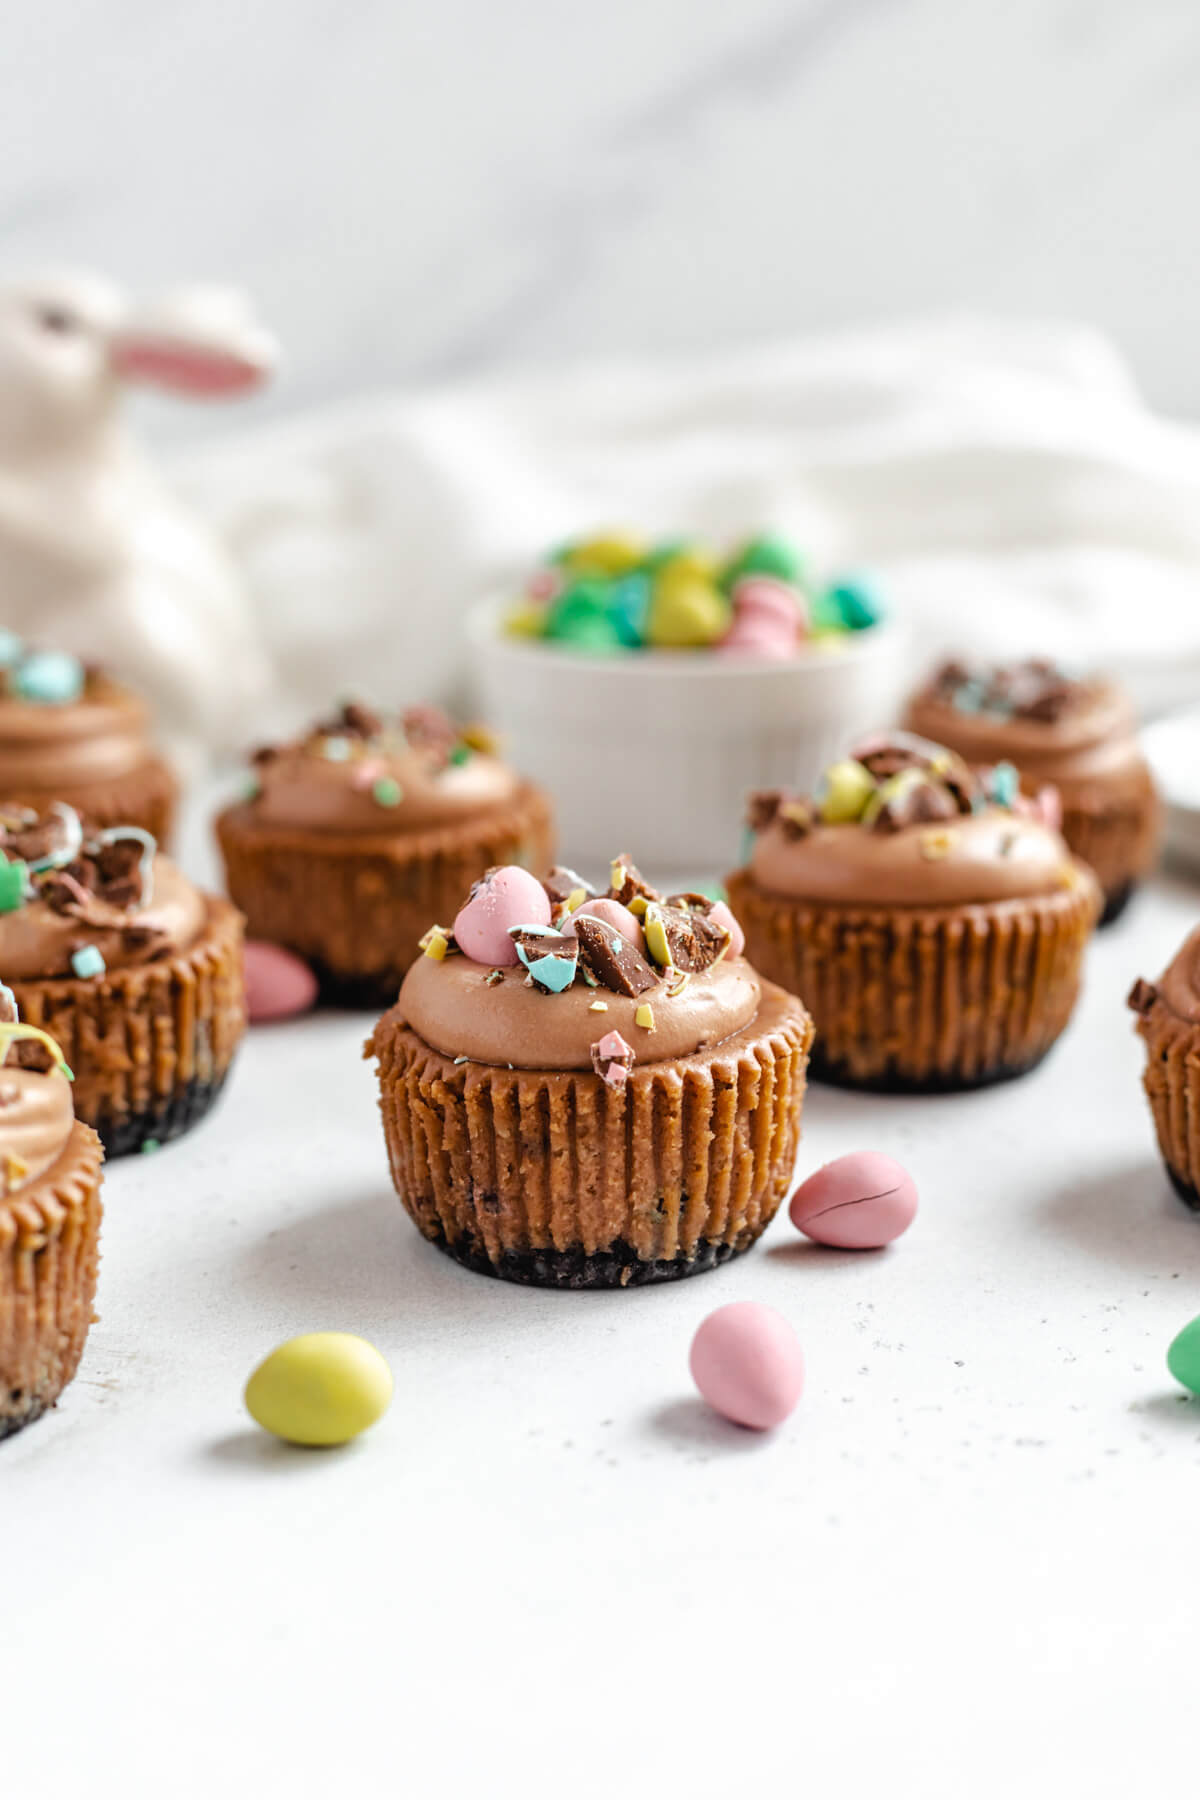 multiple mini cheesecakes topped with mousse and chopped chocolate eggs